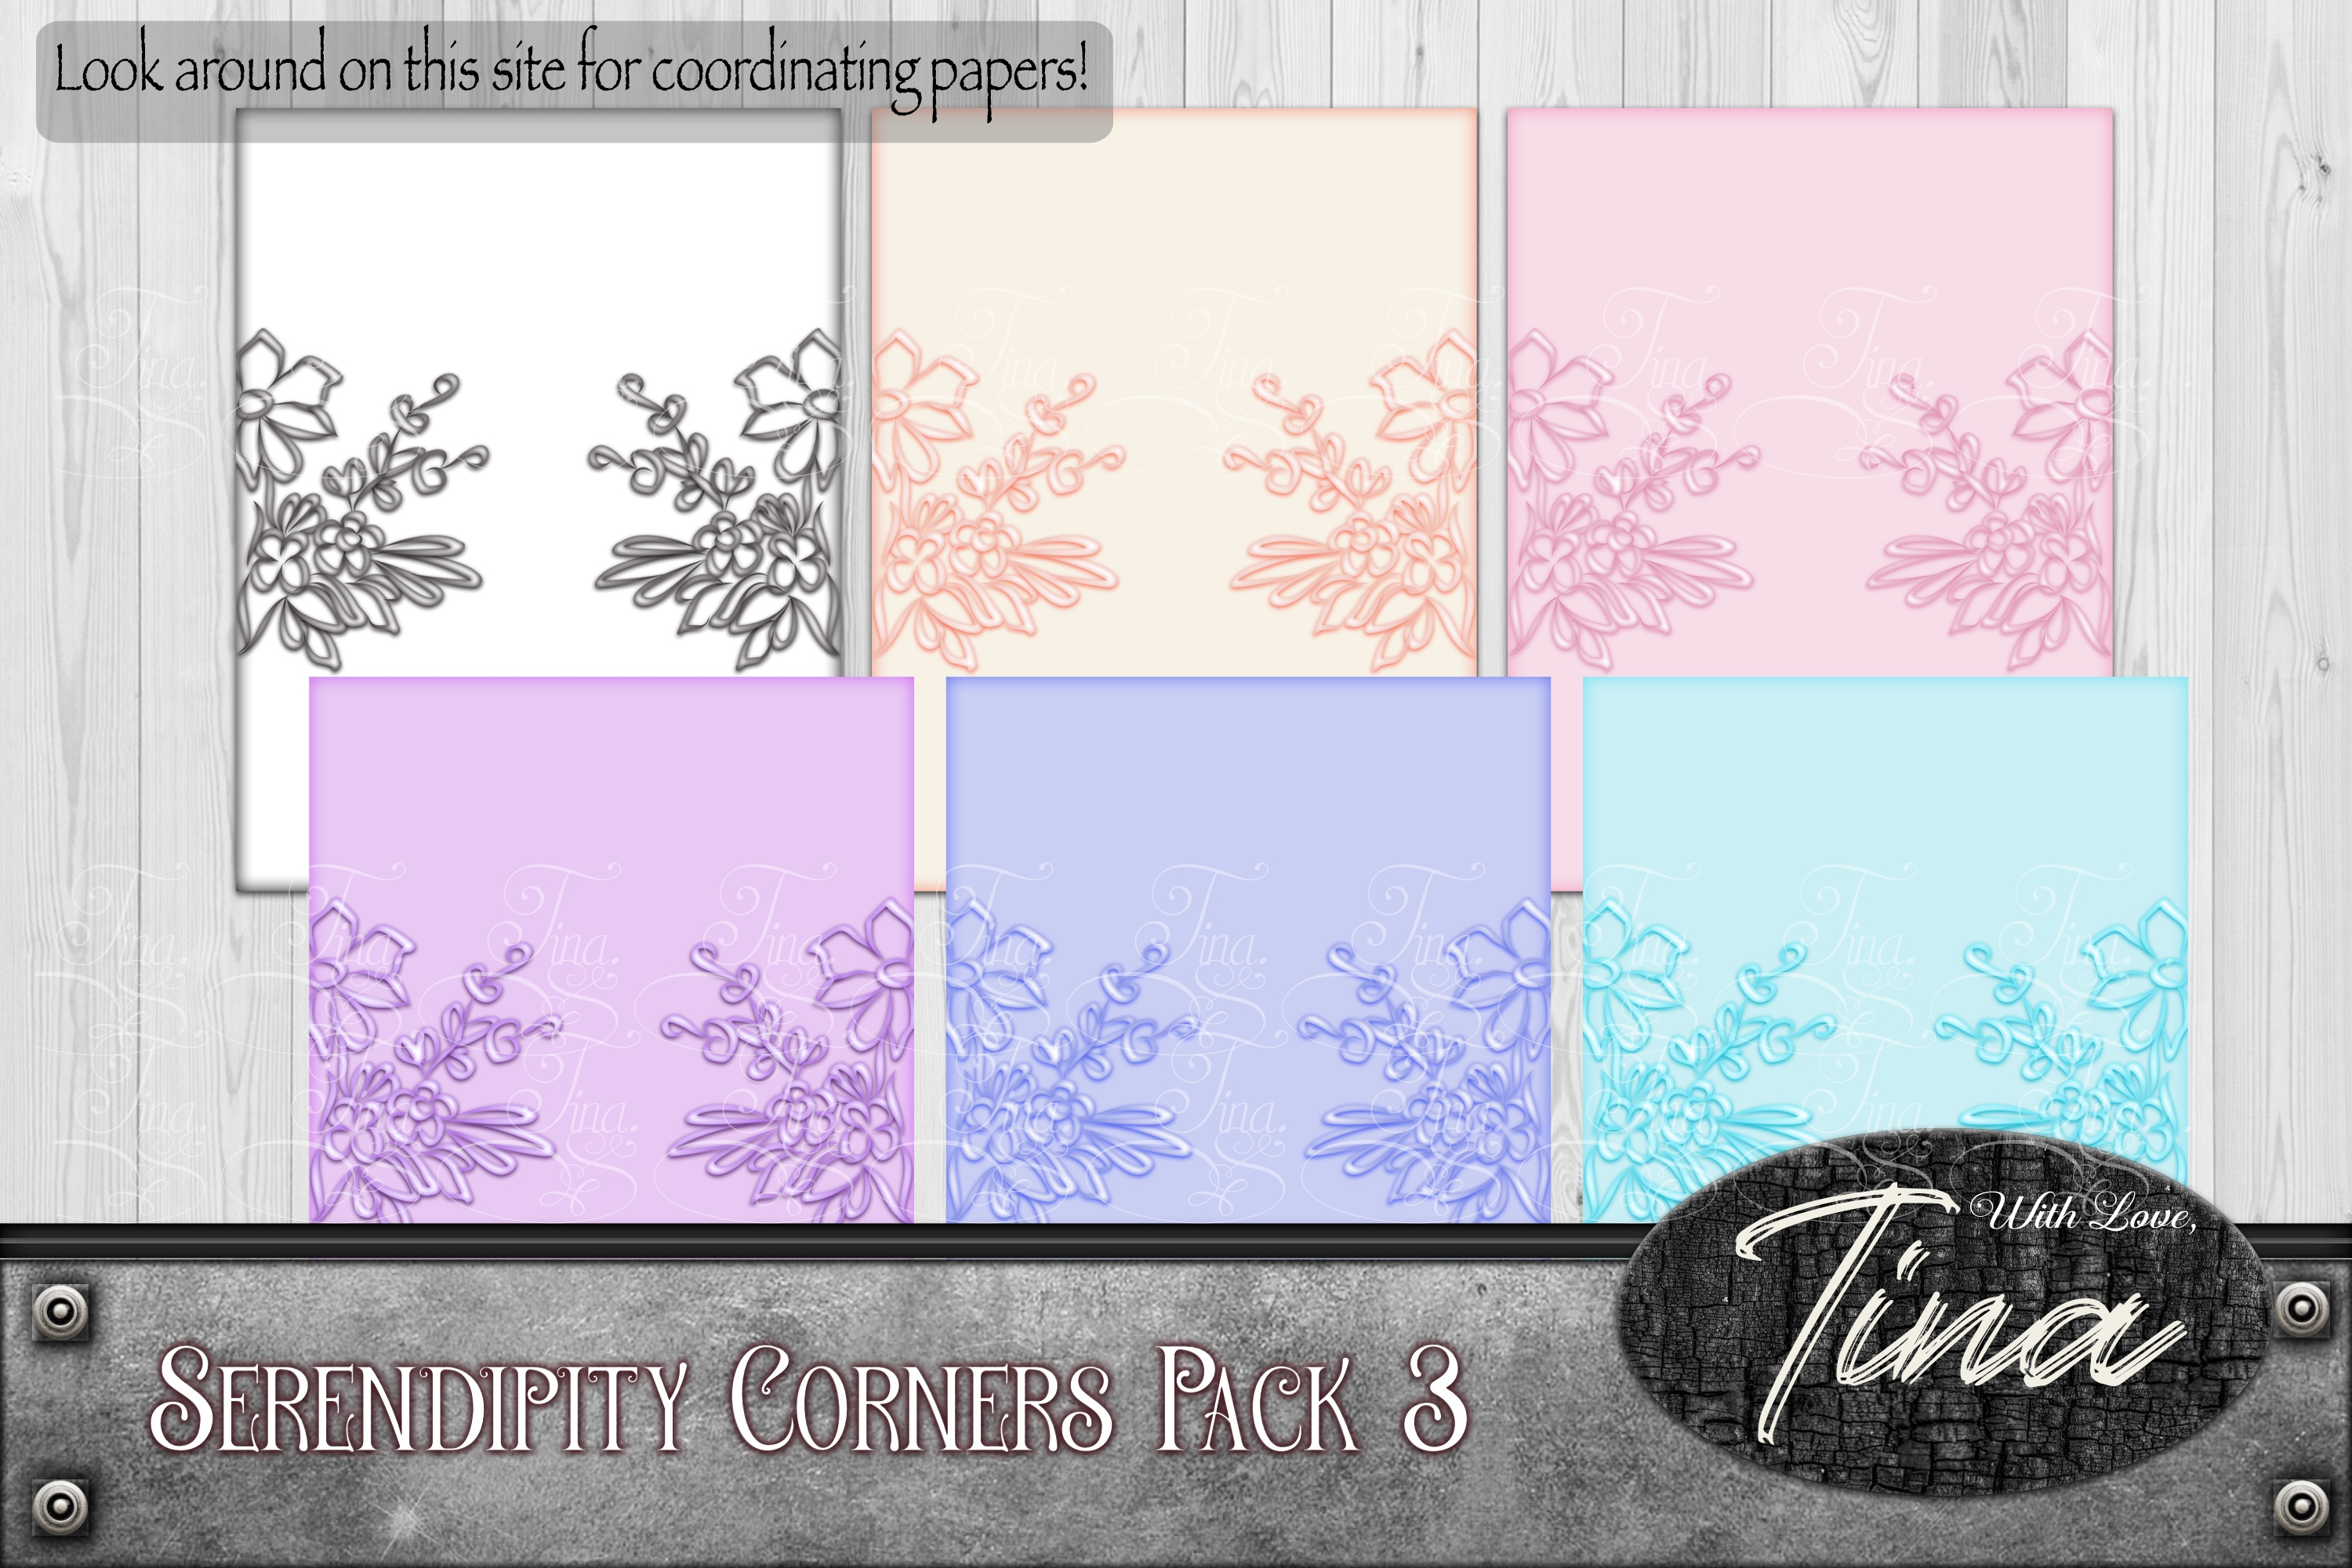 Floral Scrollwork Ironwork Scrolls Cards Wedding 092918IF3 example image 1